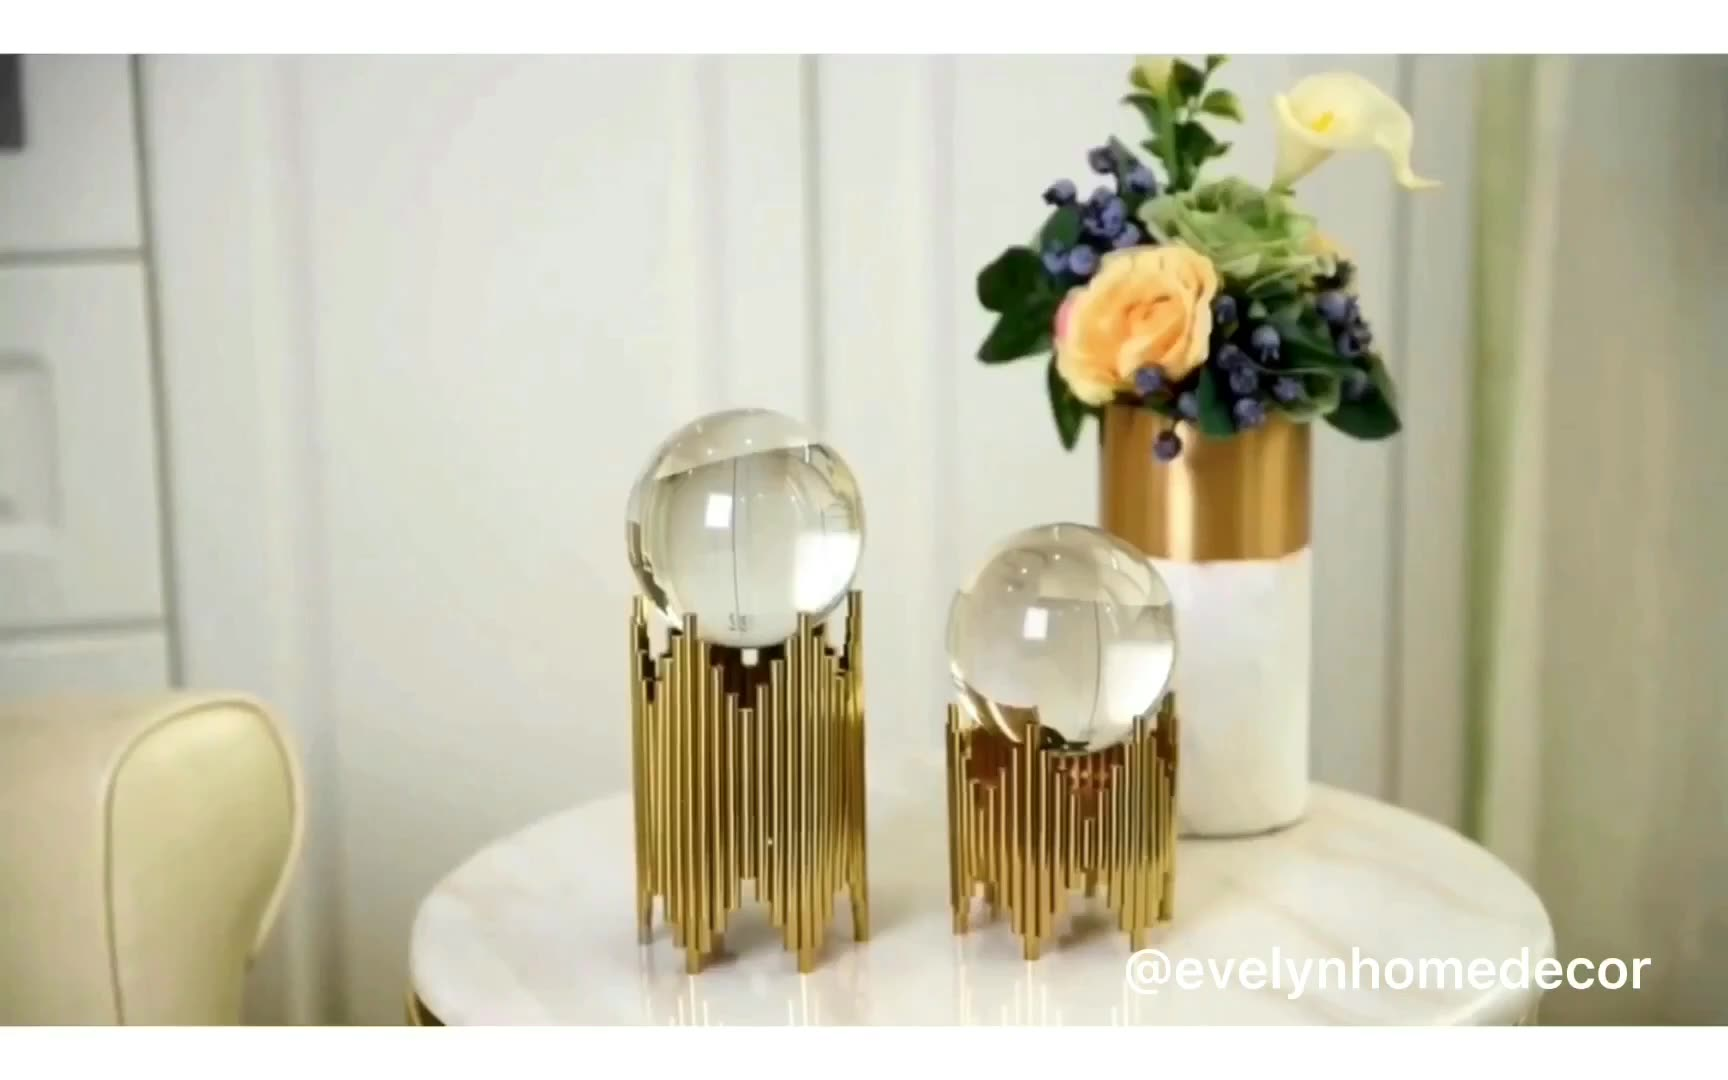 Luxury metal art craft mind crystal ball for sale wedding centerpieces crystal for interior decoration